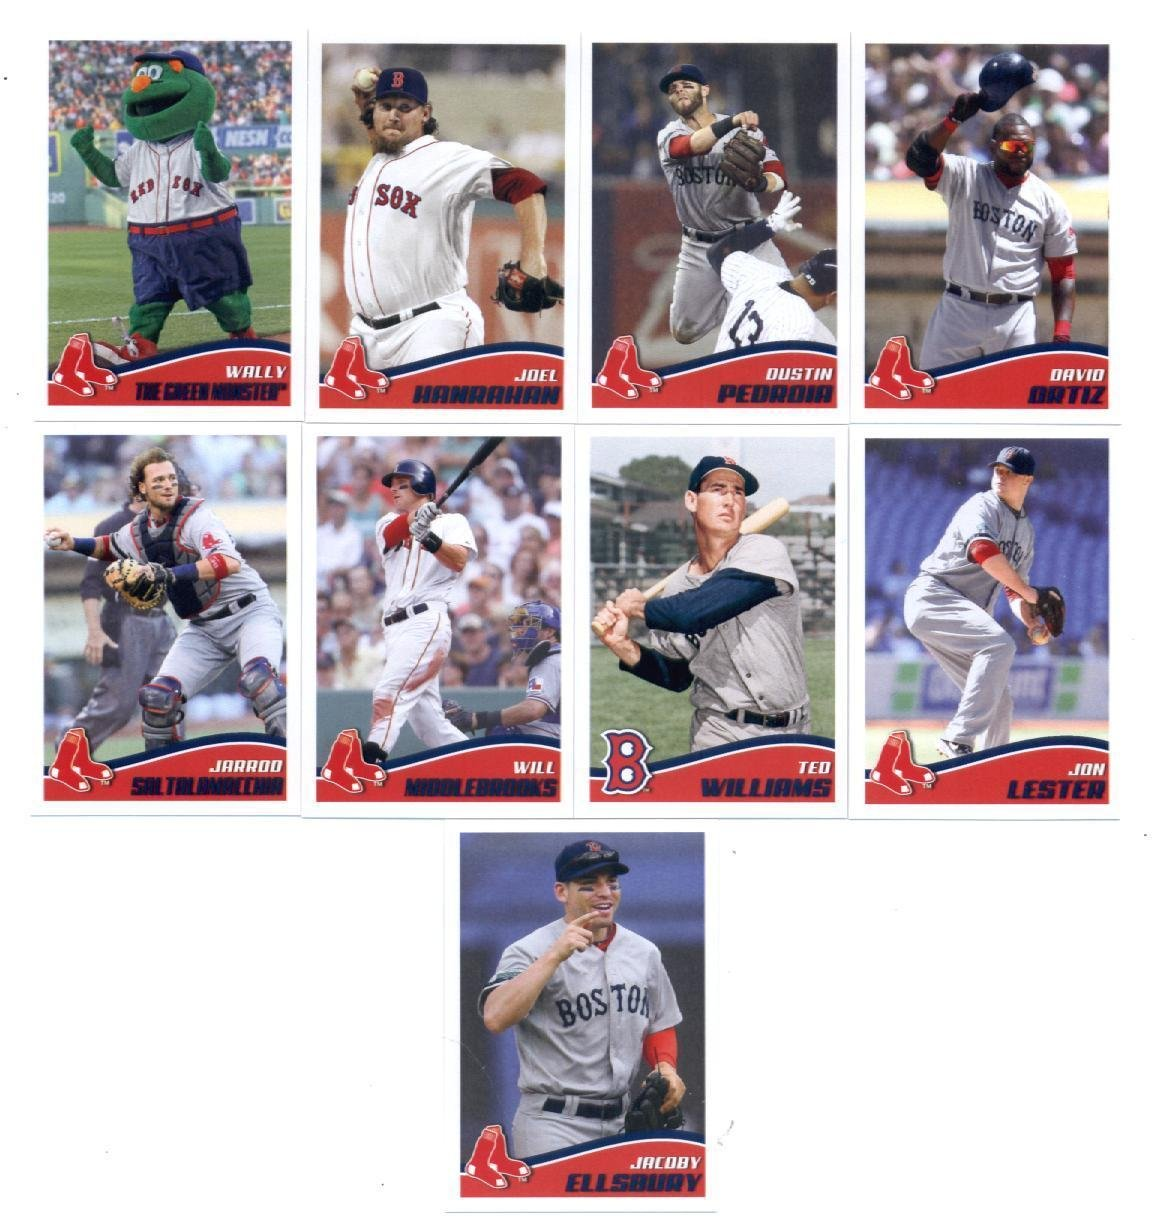 2013 Boston Red Sox Topps Opening Day Baseball MLB Stickers Complete Mint 9 Basic Card Team Set; It Was Never Issued in Factory Form. Cards Included Are #17 Joel Hanrahan, #16 Dustin Pedroia, #15 David Ortiz, #14 Jarrod Saltalamacchia, #13 Will Middlebrooks, #11 Jon Lester, #10 Jacoby Ellsbury, #12